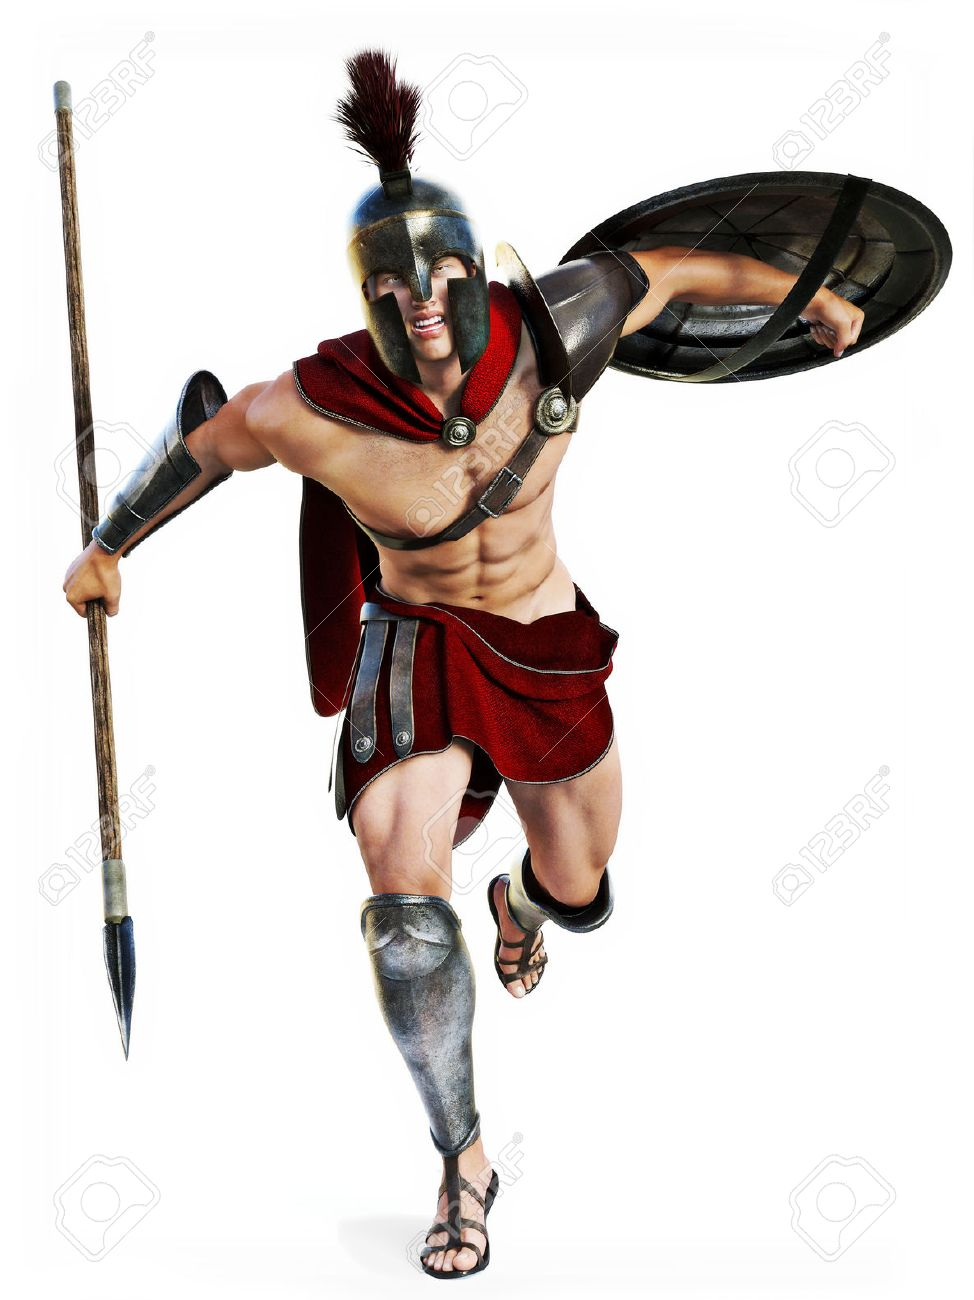 Spartan charge , Full length illustration of a Spartan warrior in Battle dress attacking on a white background. Photo realistic 3d model scene. Standard-Bild - 52448679